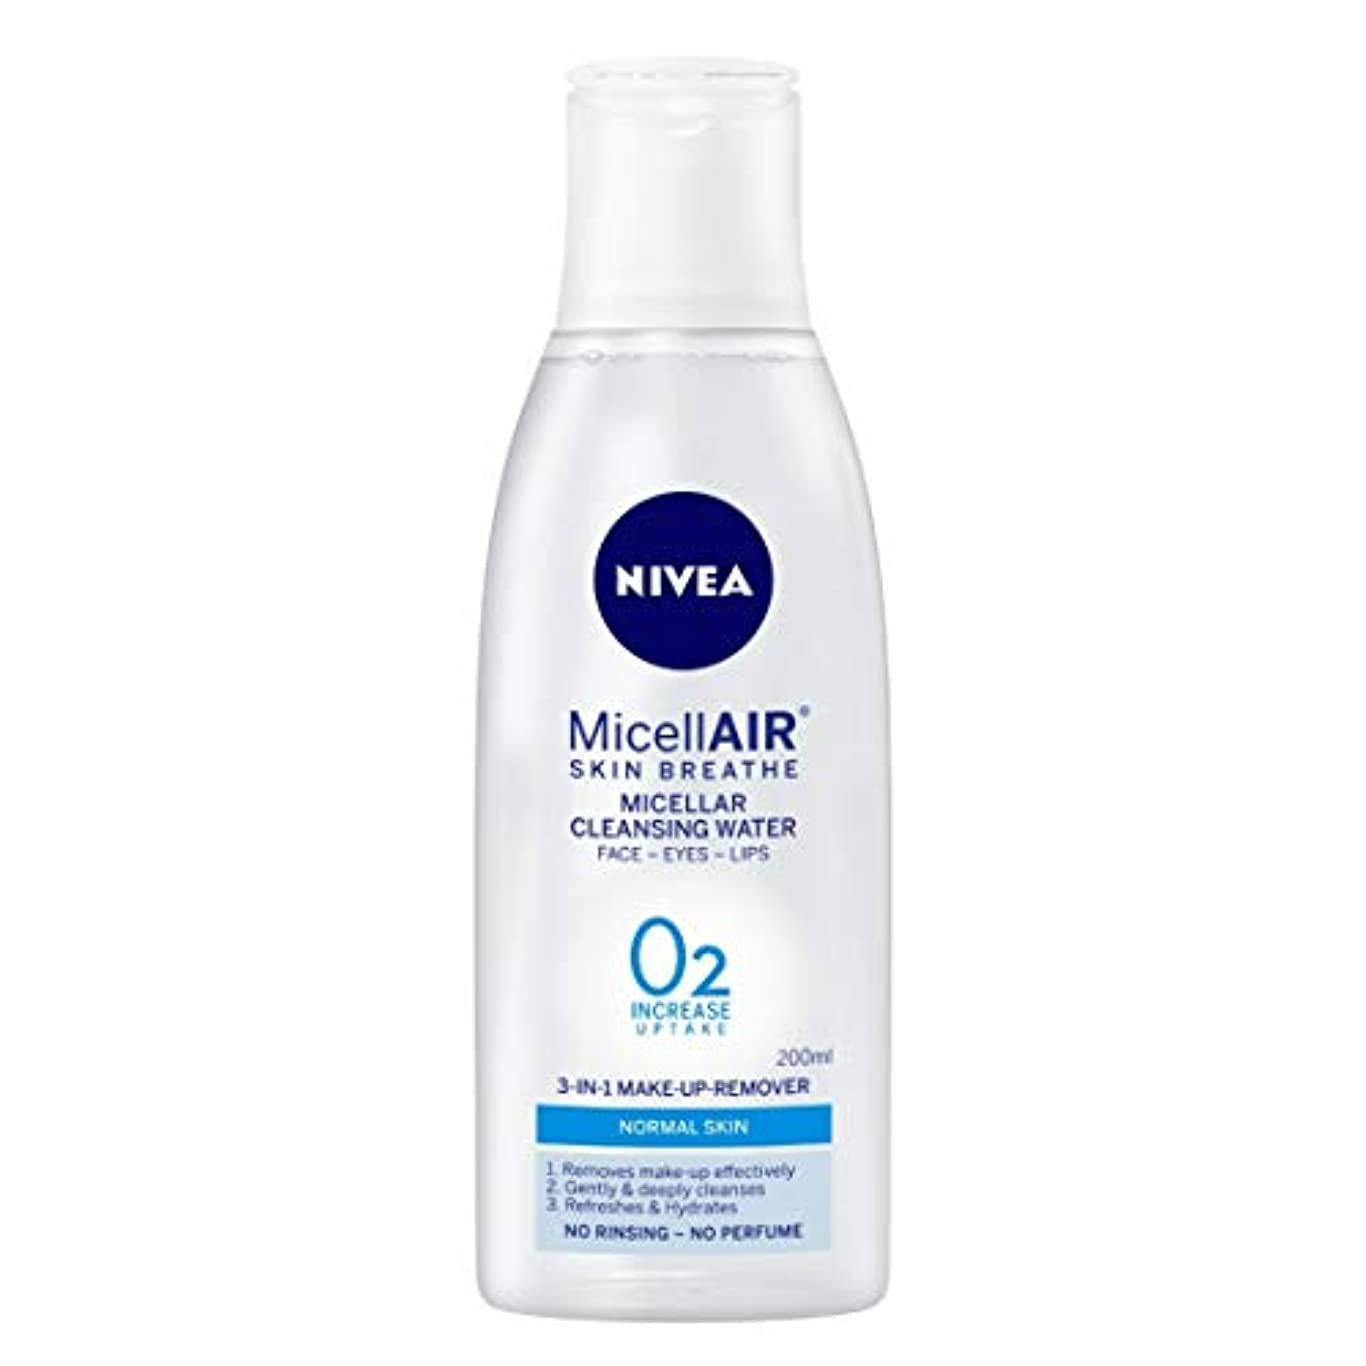 ヒップ詩アフリカ人NIVEA Micellar Cleansing Water, MicellAIR Skin Breathe Make Up Remover, 200ml